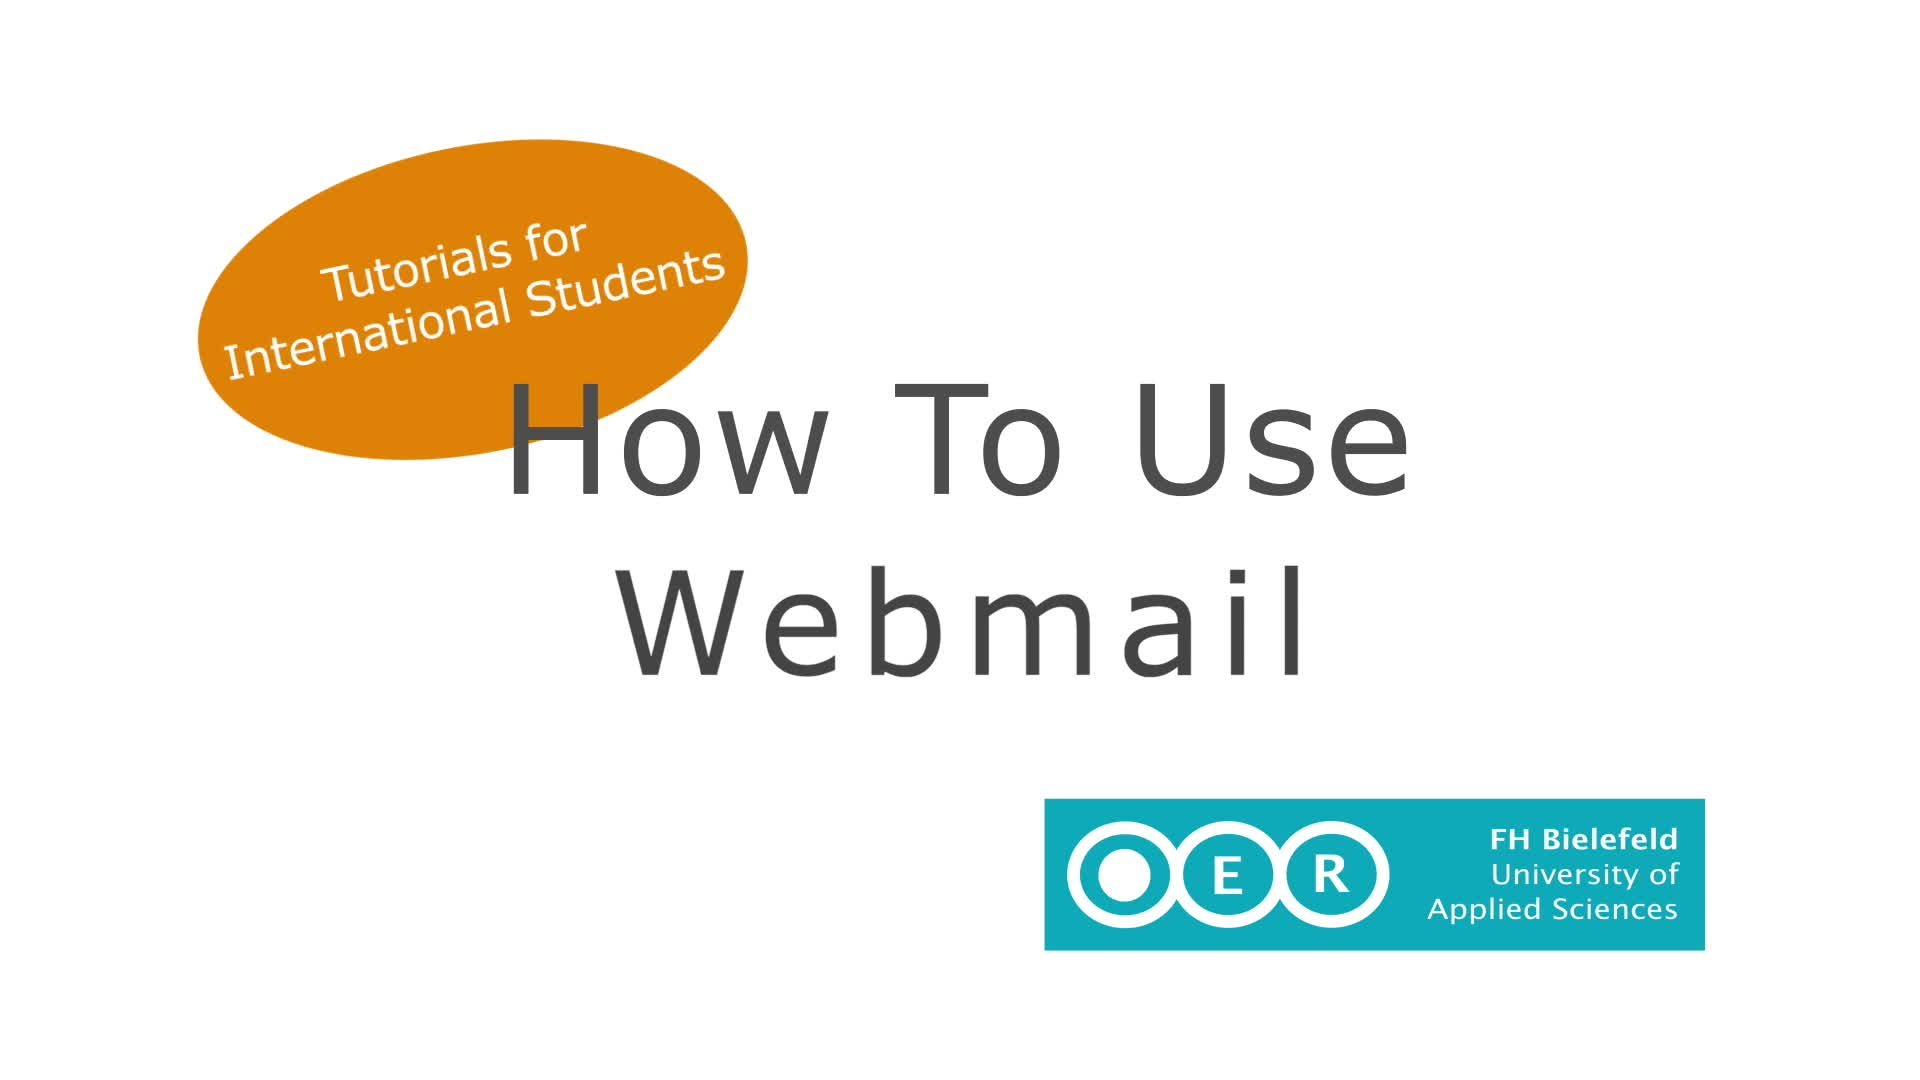 How to Use Webmail - Tutorial for International Students